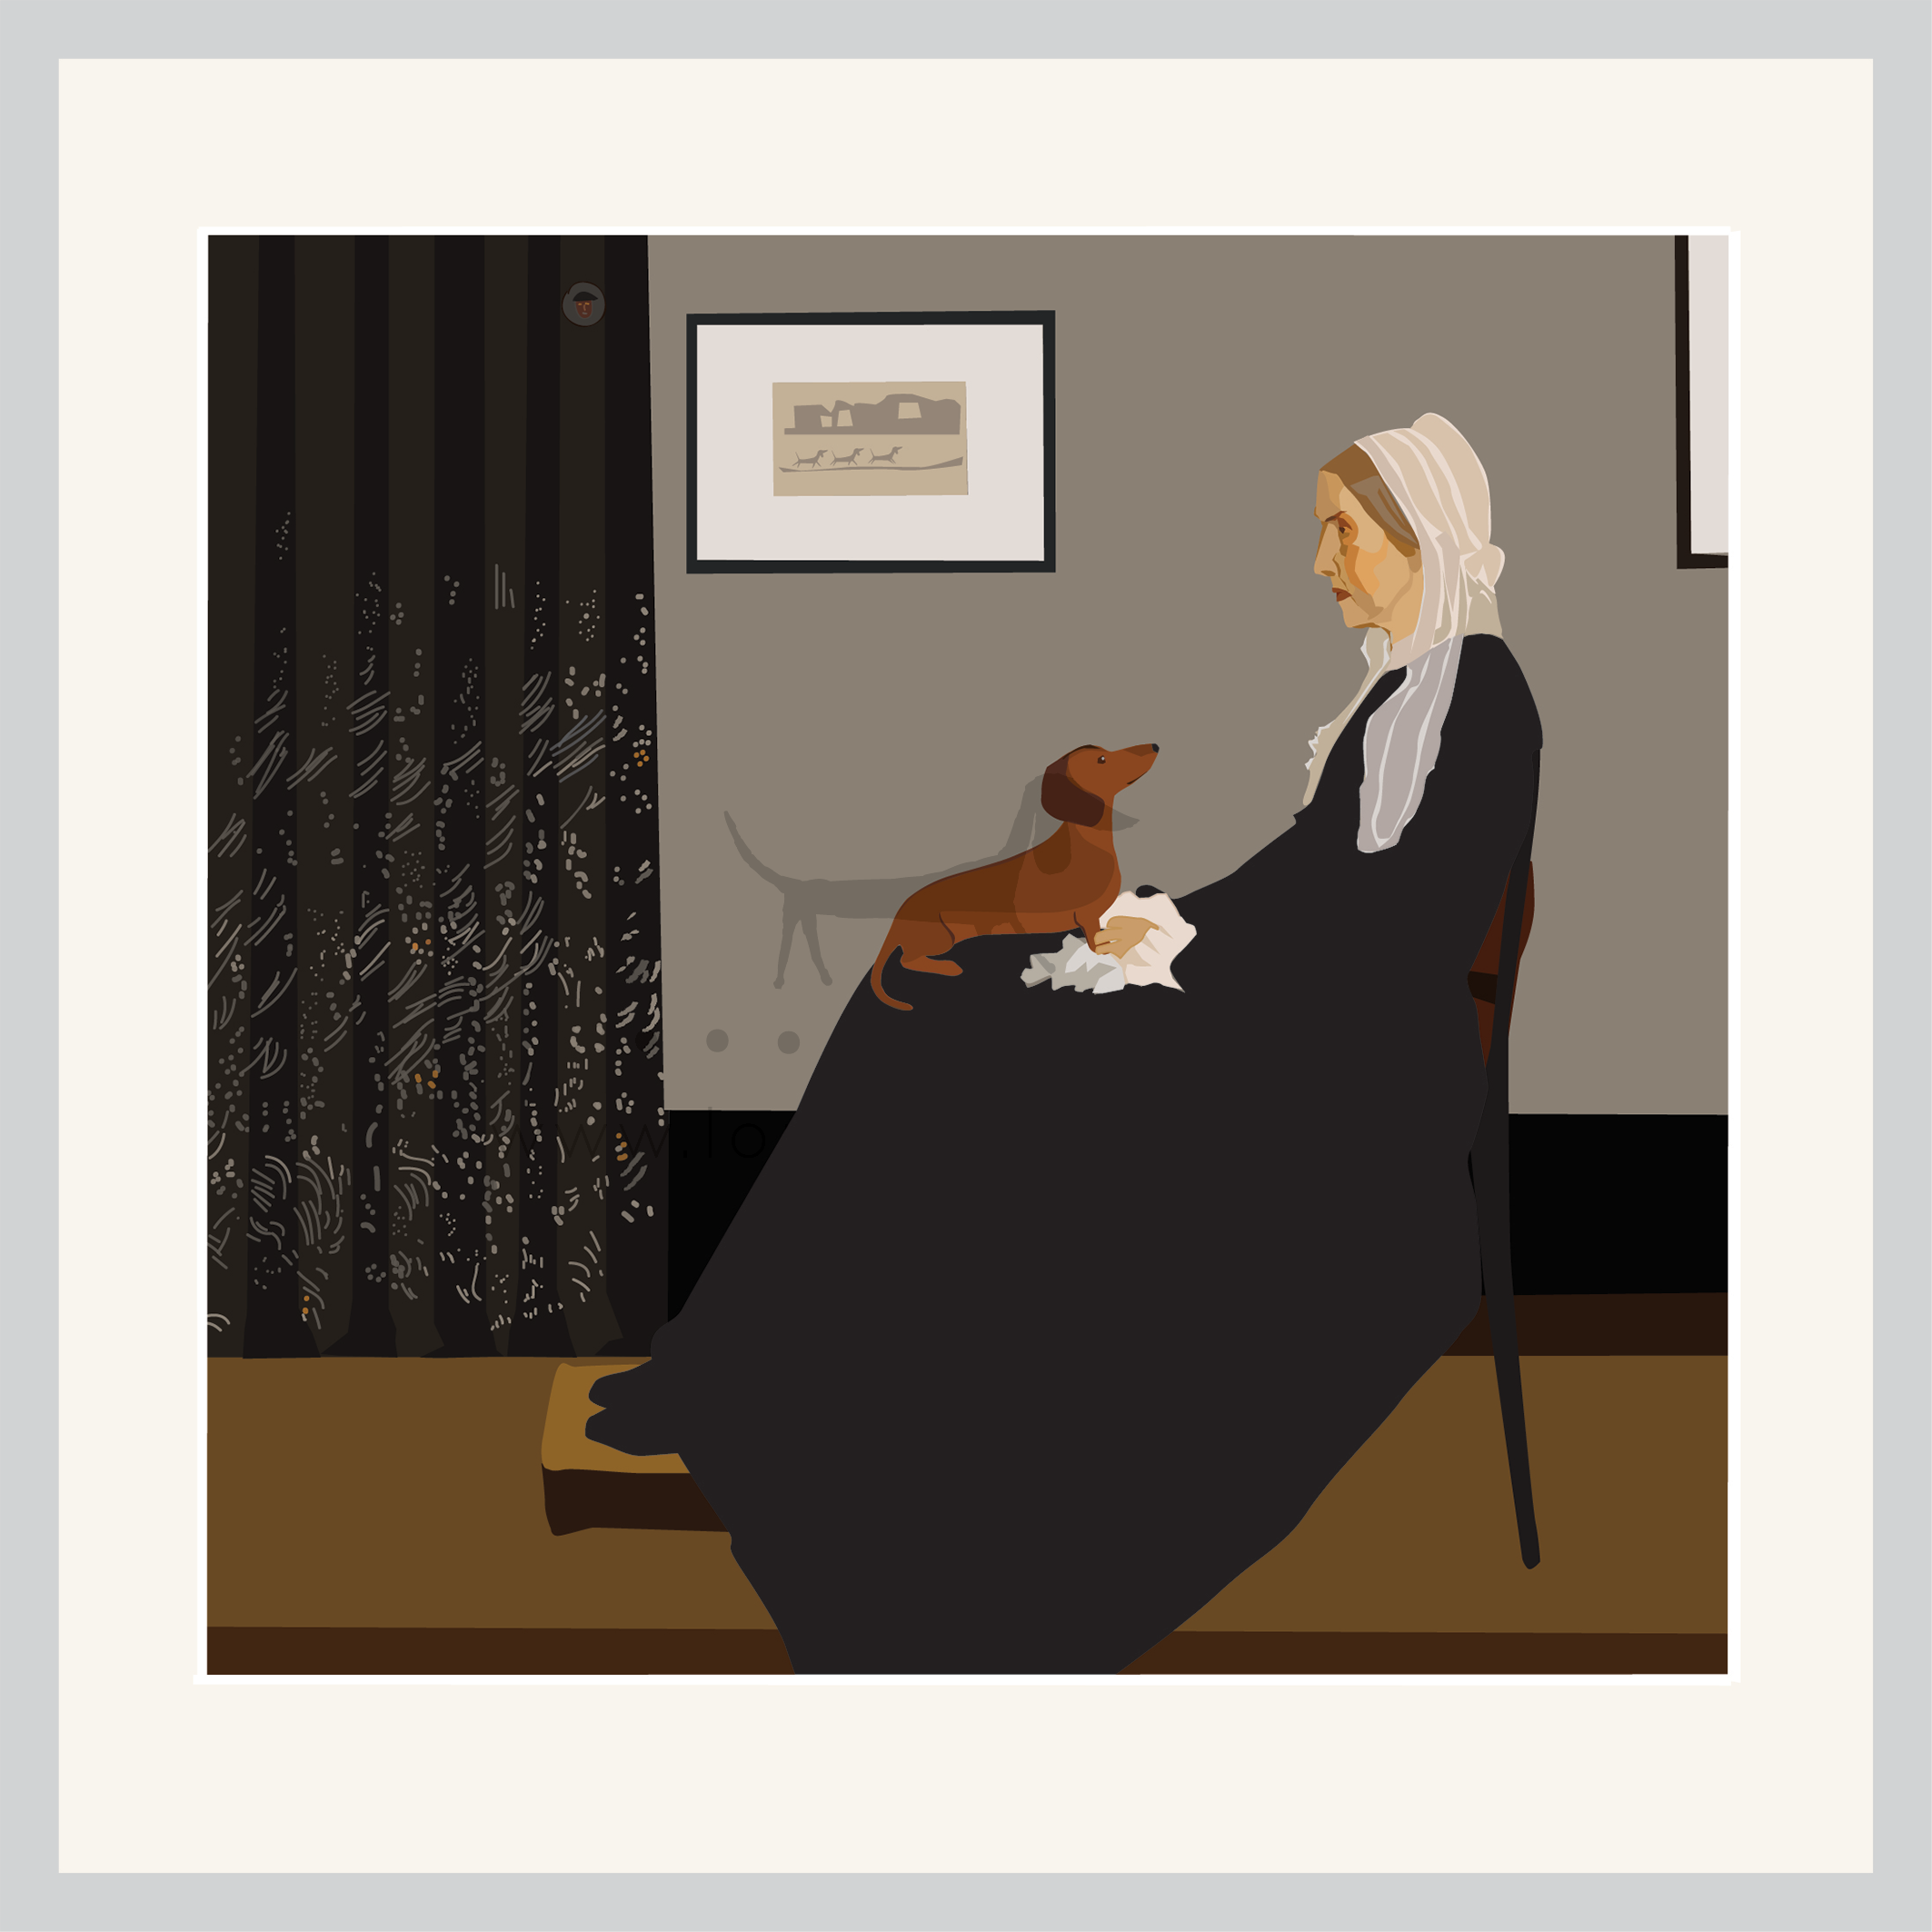 Whistlers Dachshund sits on Mothers knee in this parody on an iconic painting.